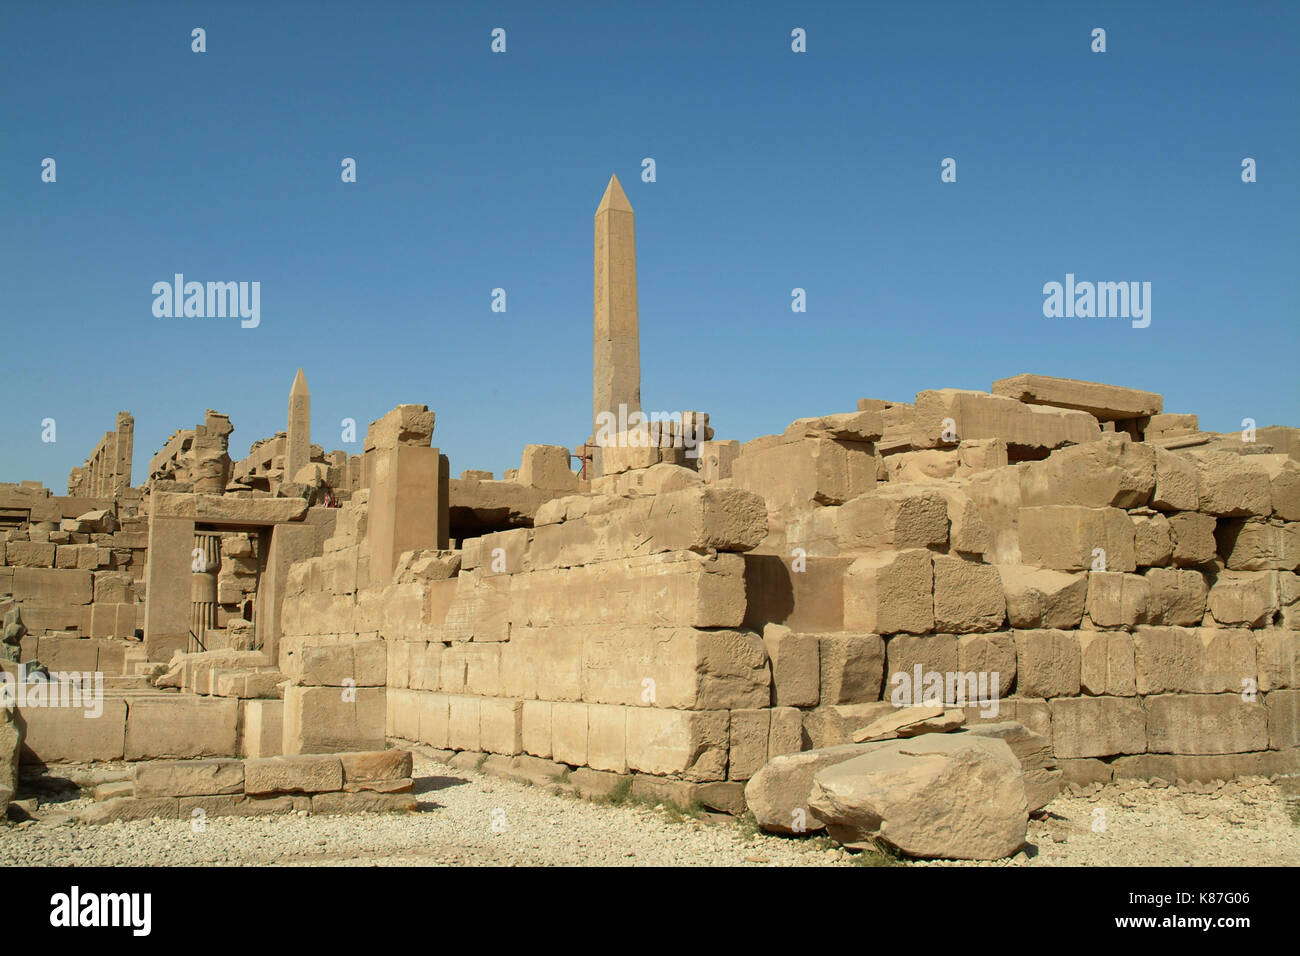 Ruins of an Ancient Temple in Luxor, without people, Thebes, UNESCO World Heritage Site, Egypt, North Africa, Africa - Stock Image